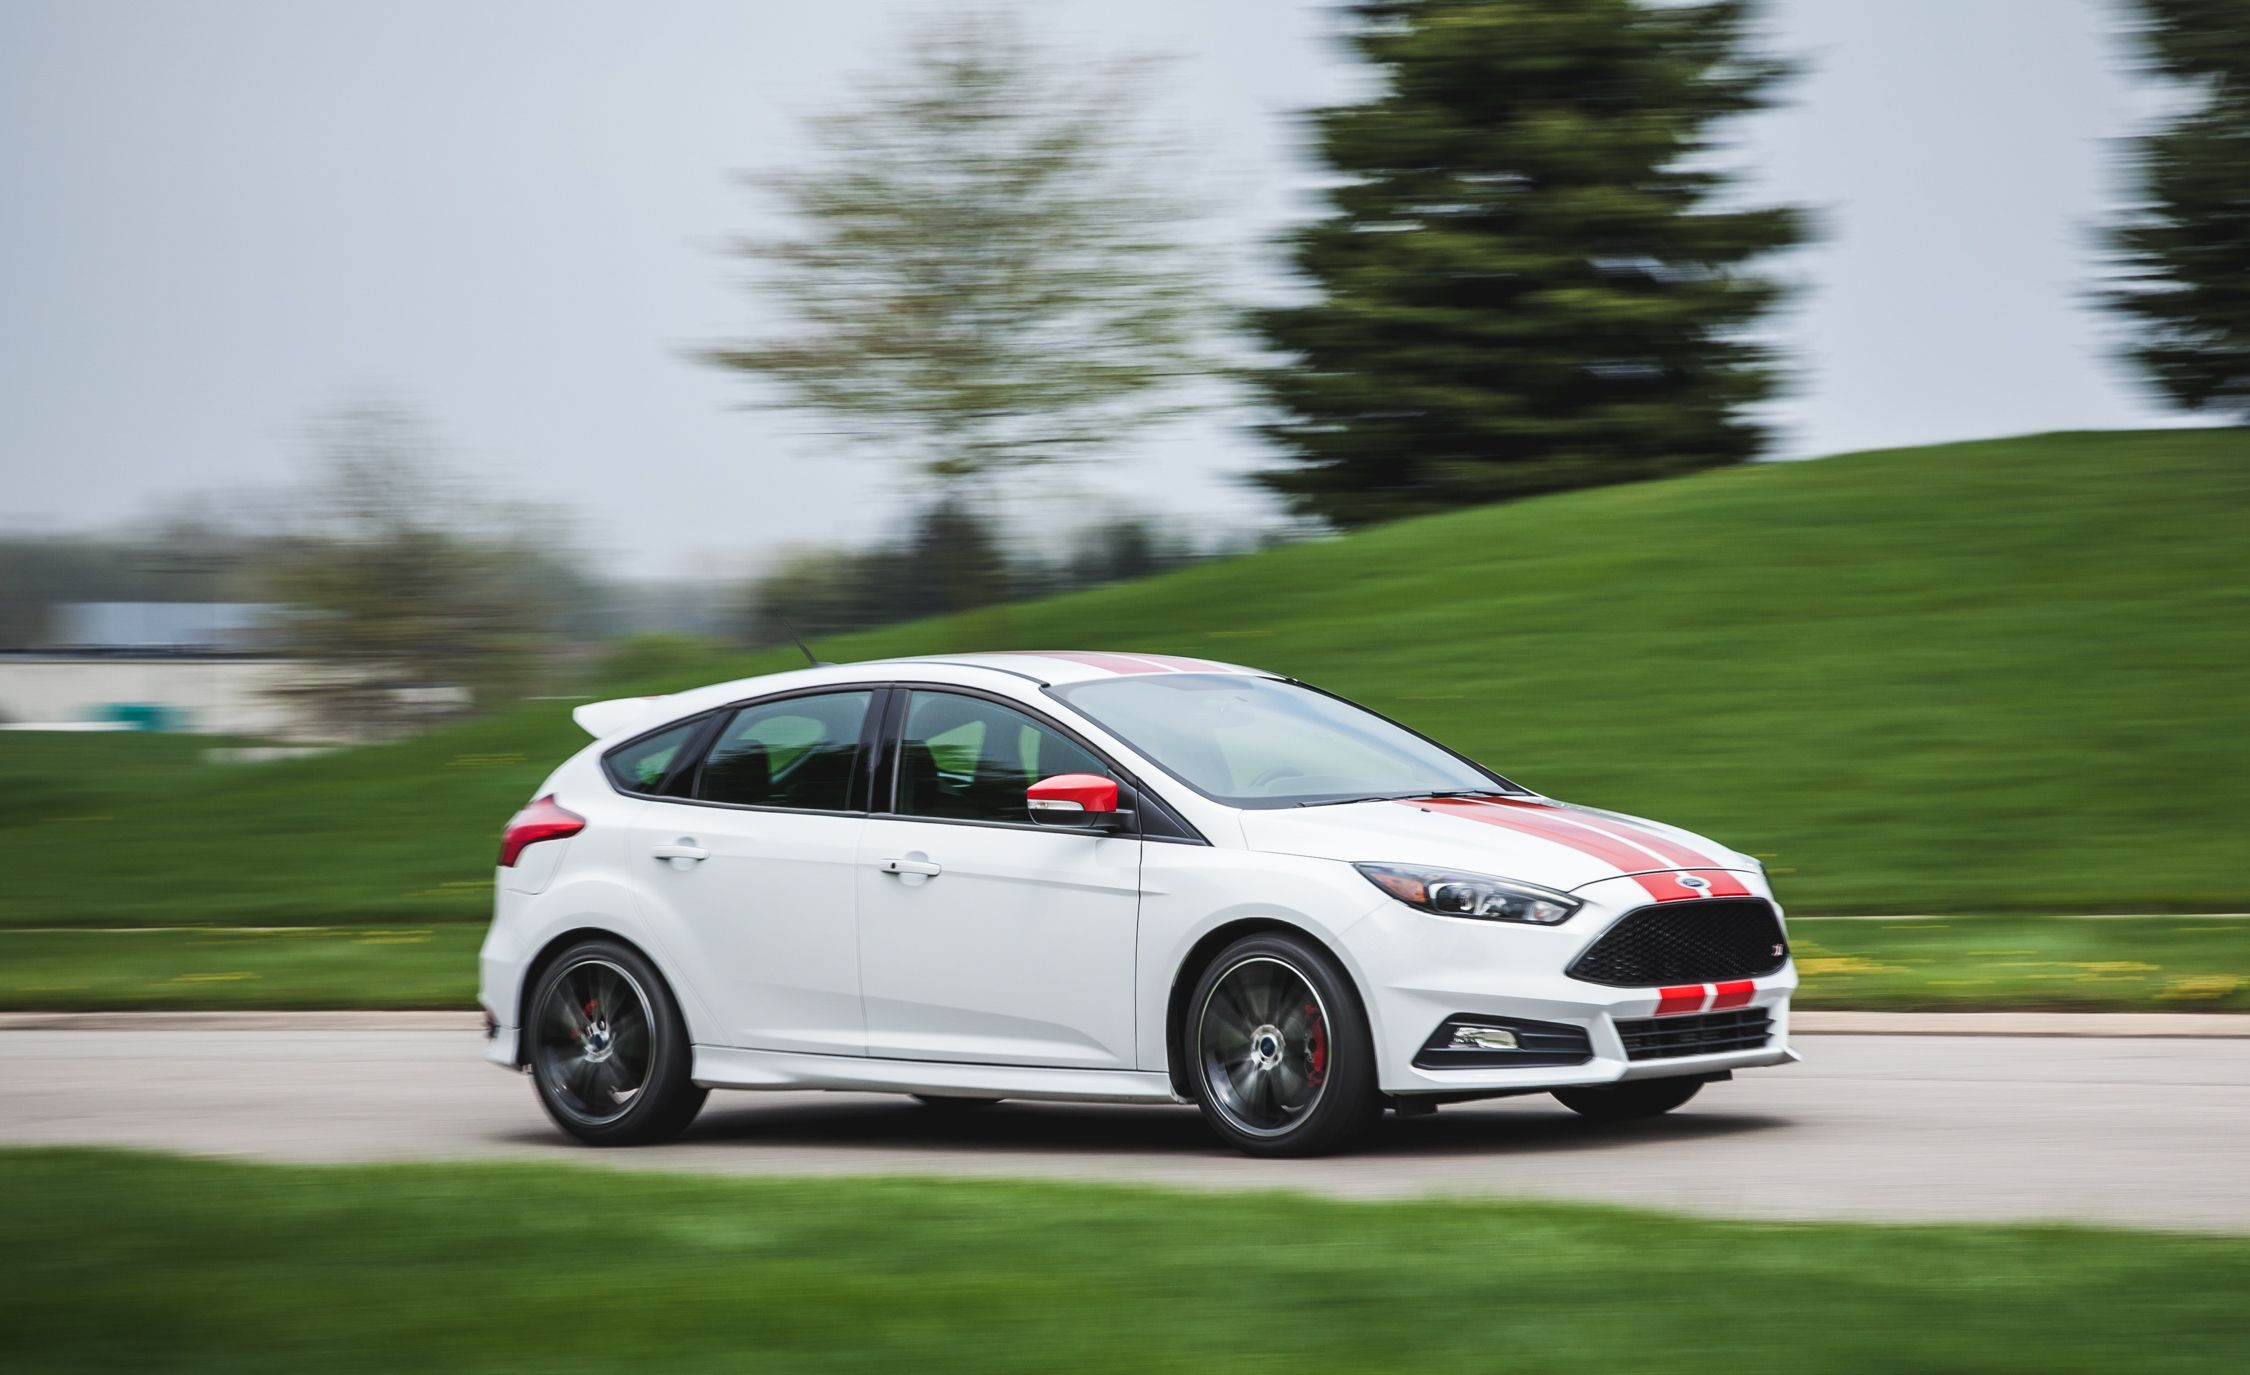 Ford Focus St Reviews Ford Focus St Price Photos And Specs Car And Driver